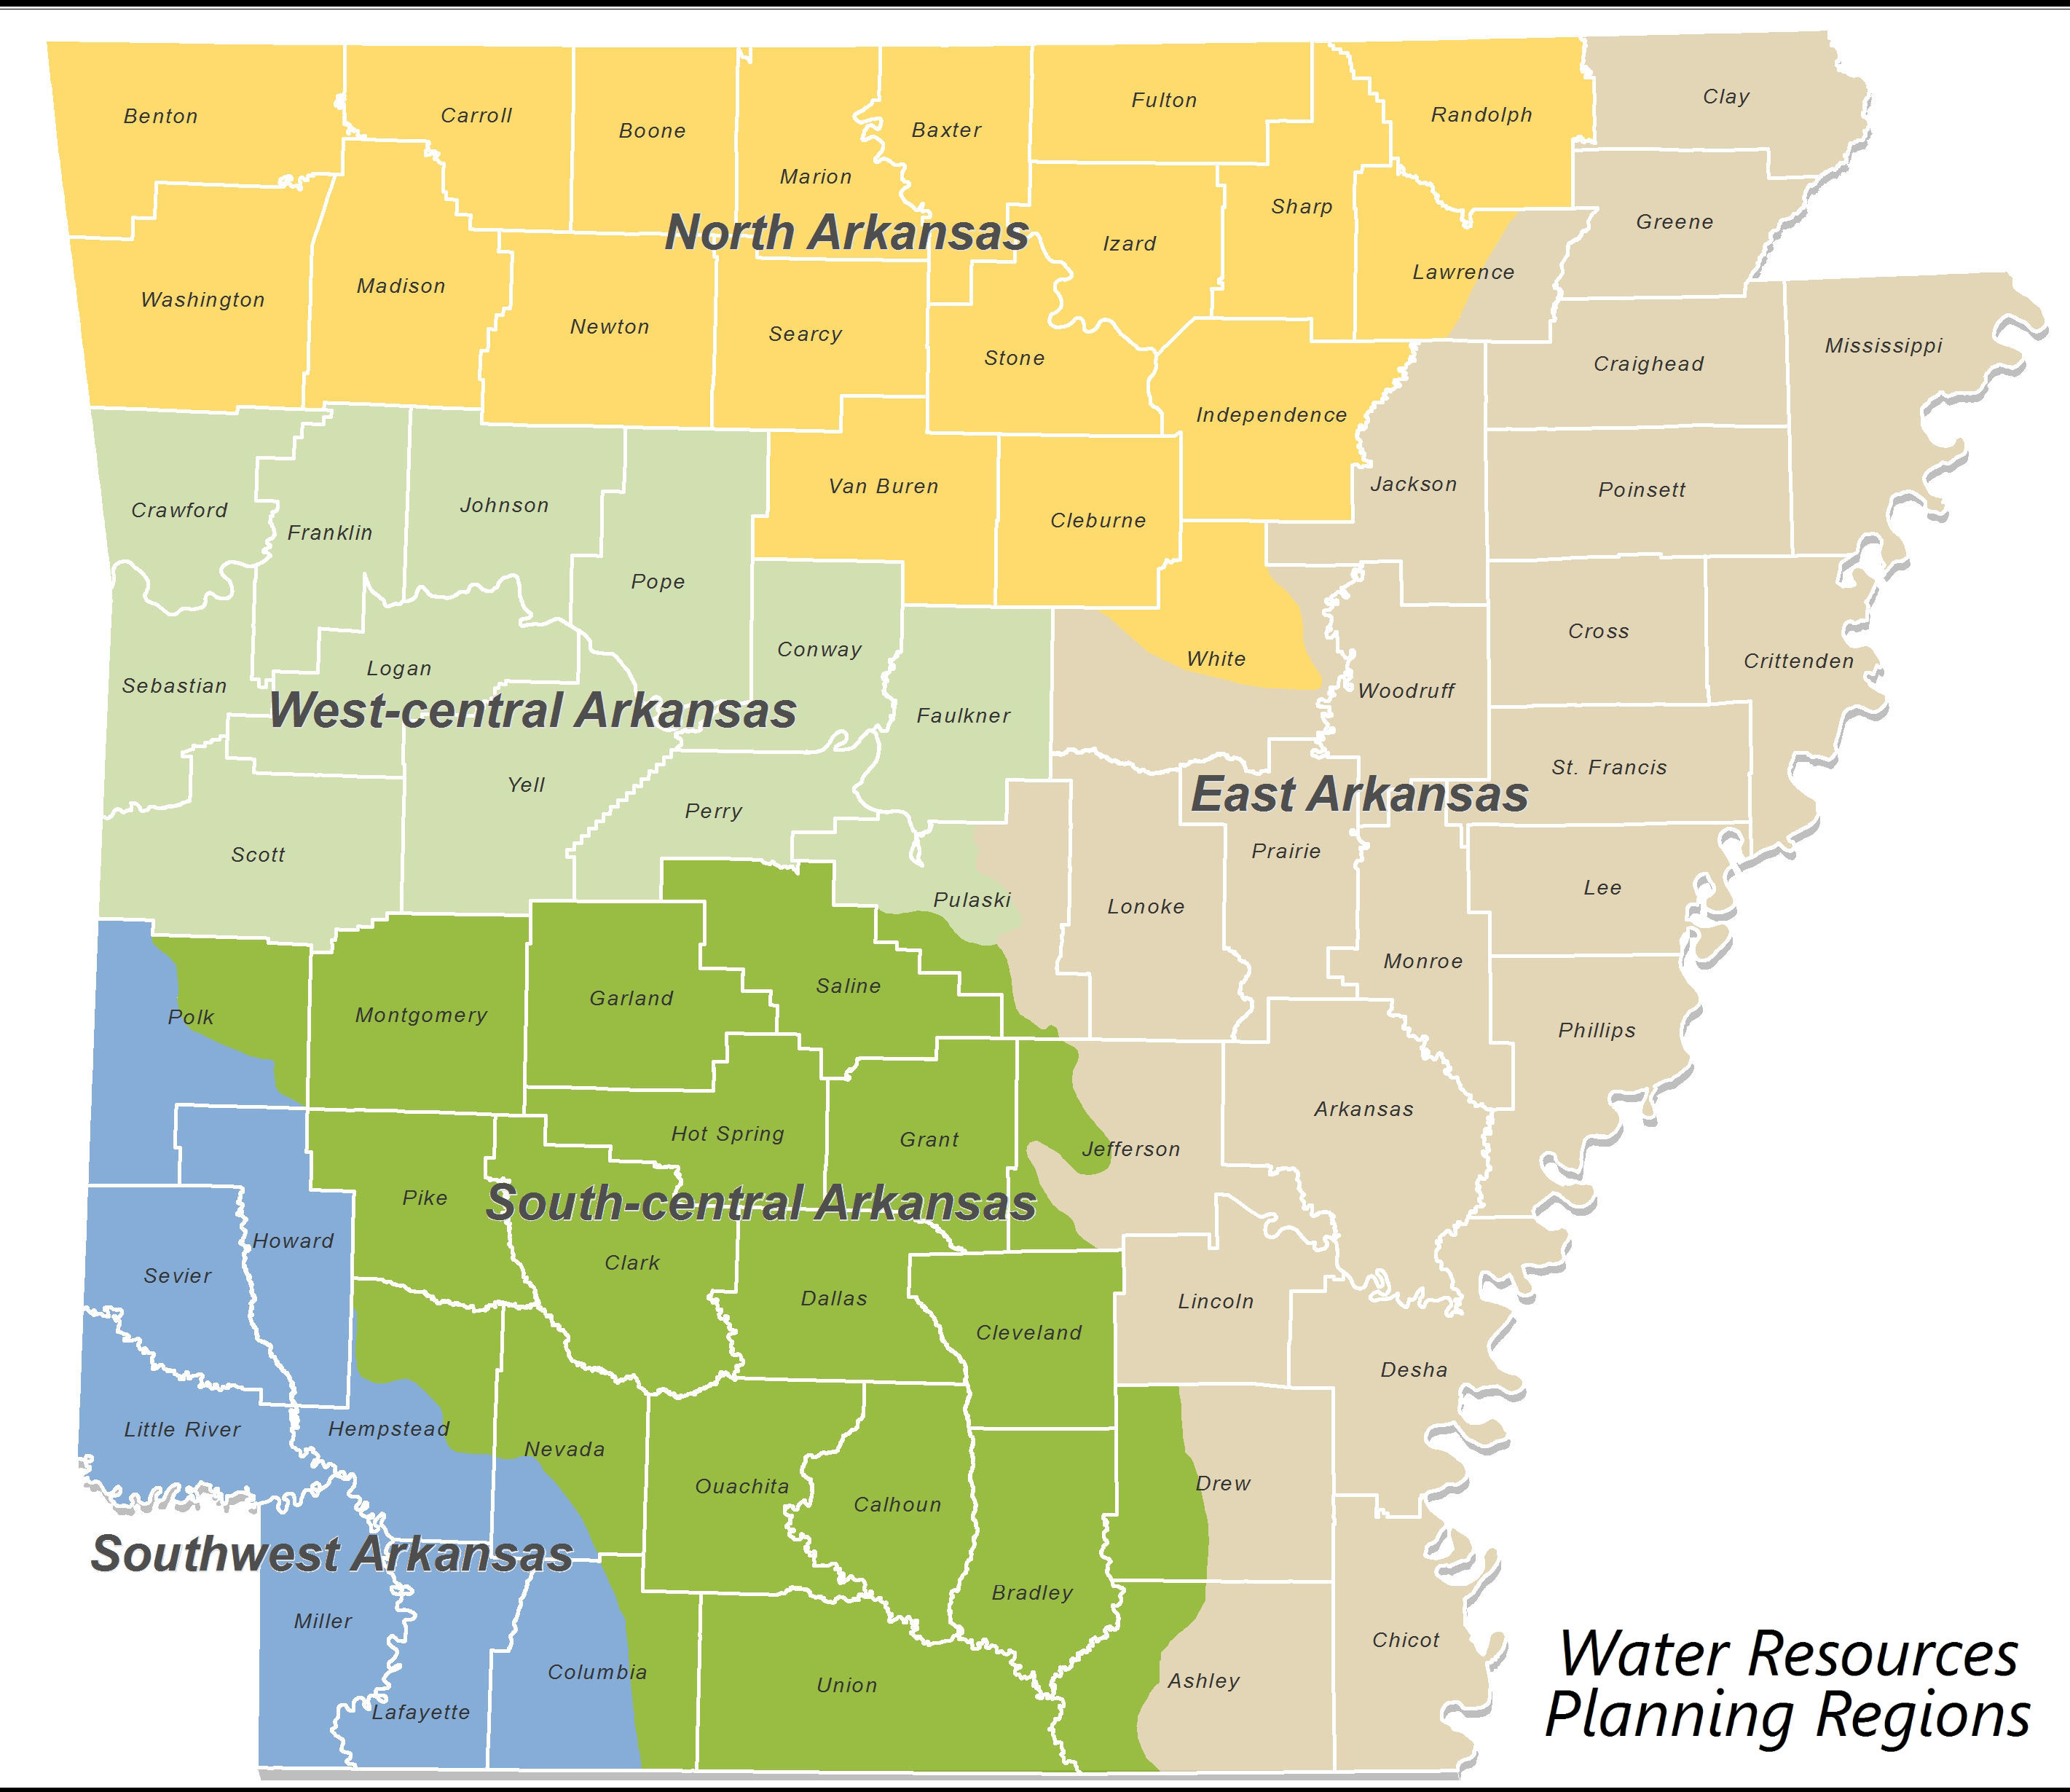 Water Resources Planning Regions